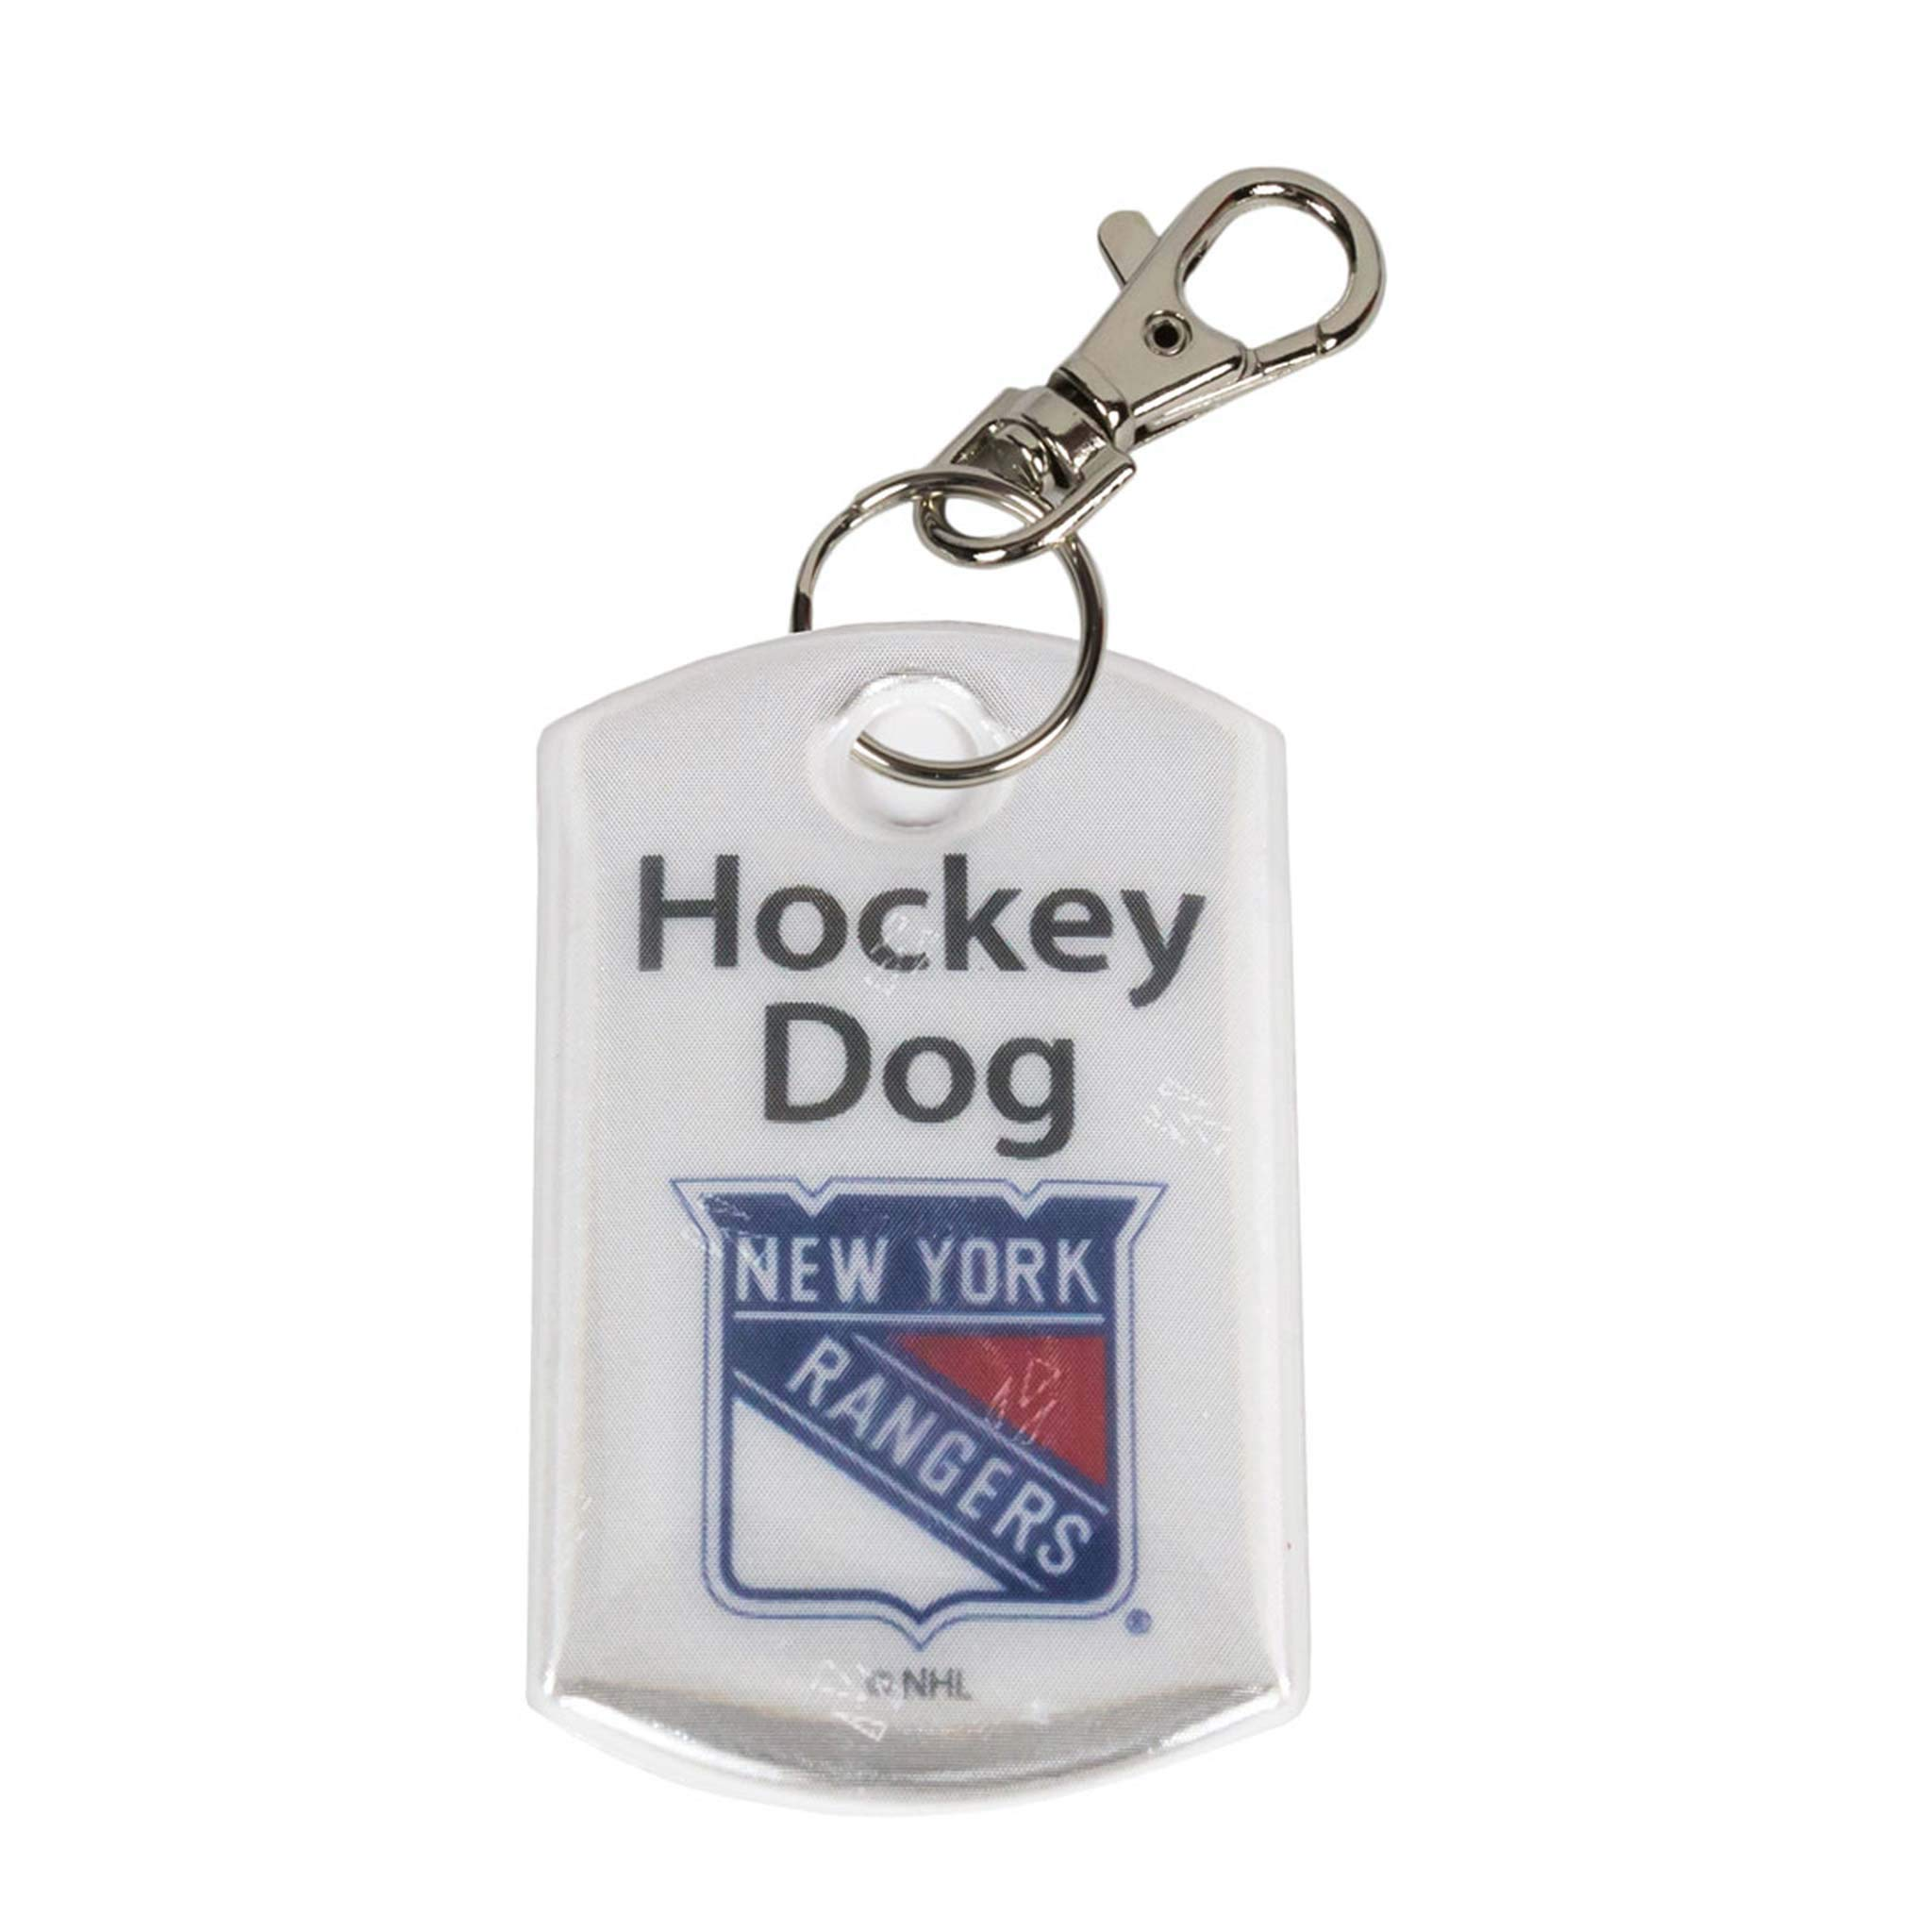 Finnex Reflectors Official NHL New York Rangers Hockey Dog Reflector   High Visibility Safety Reflector Provides Night…